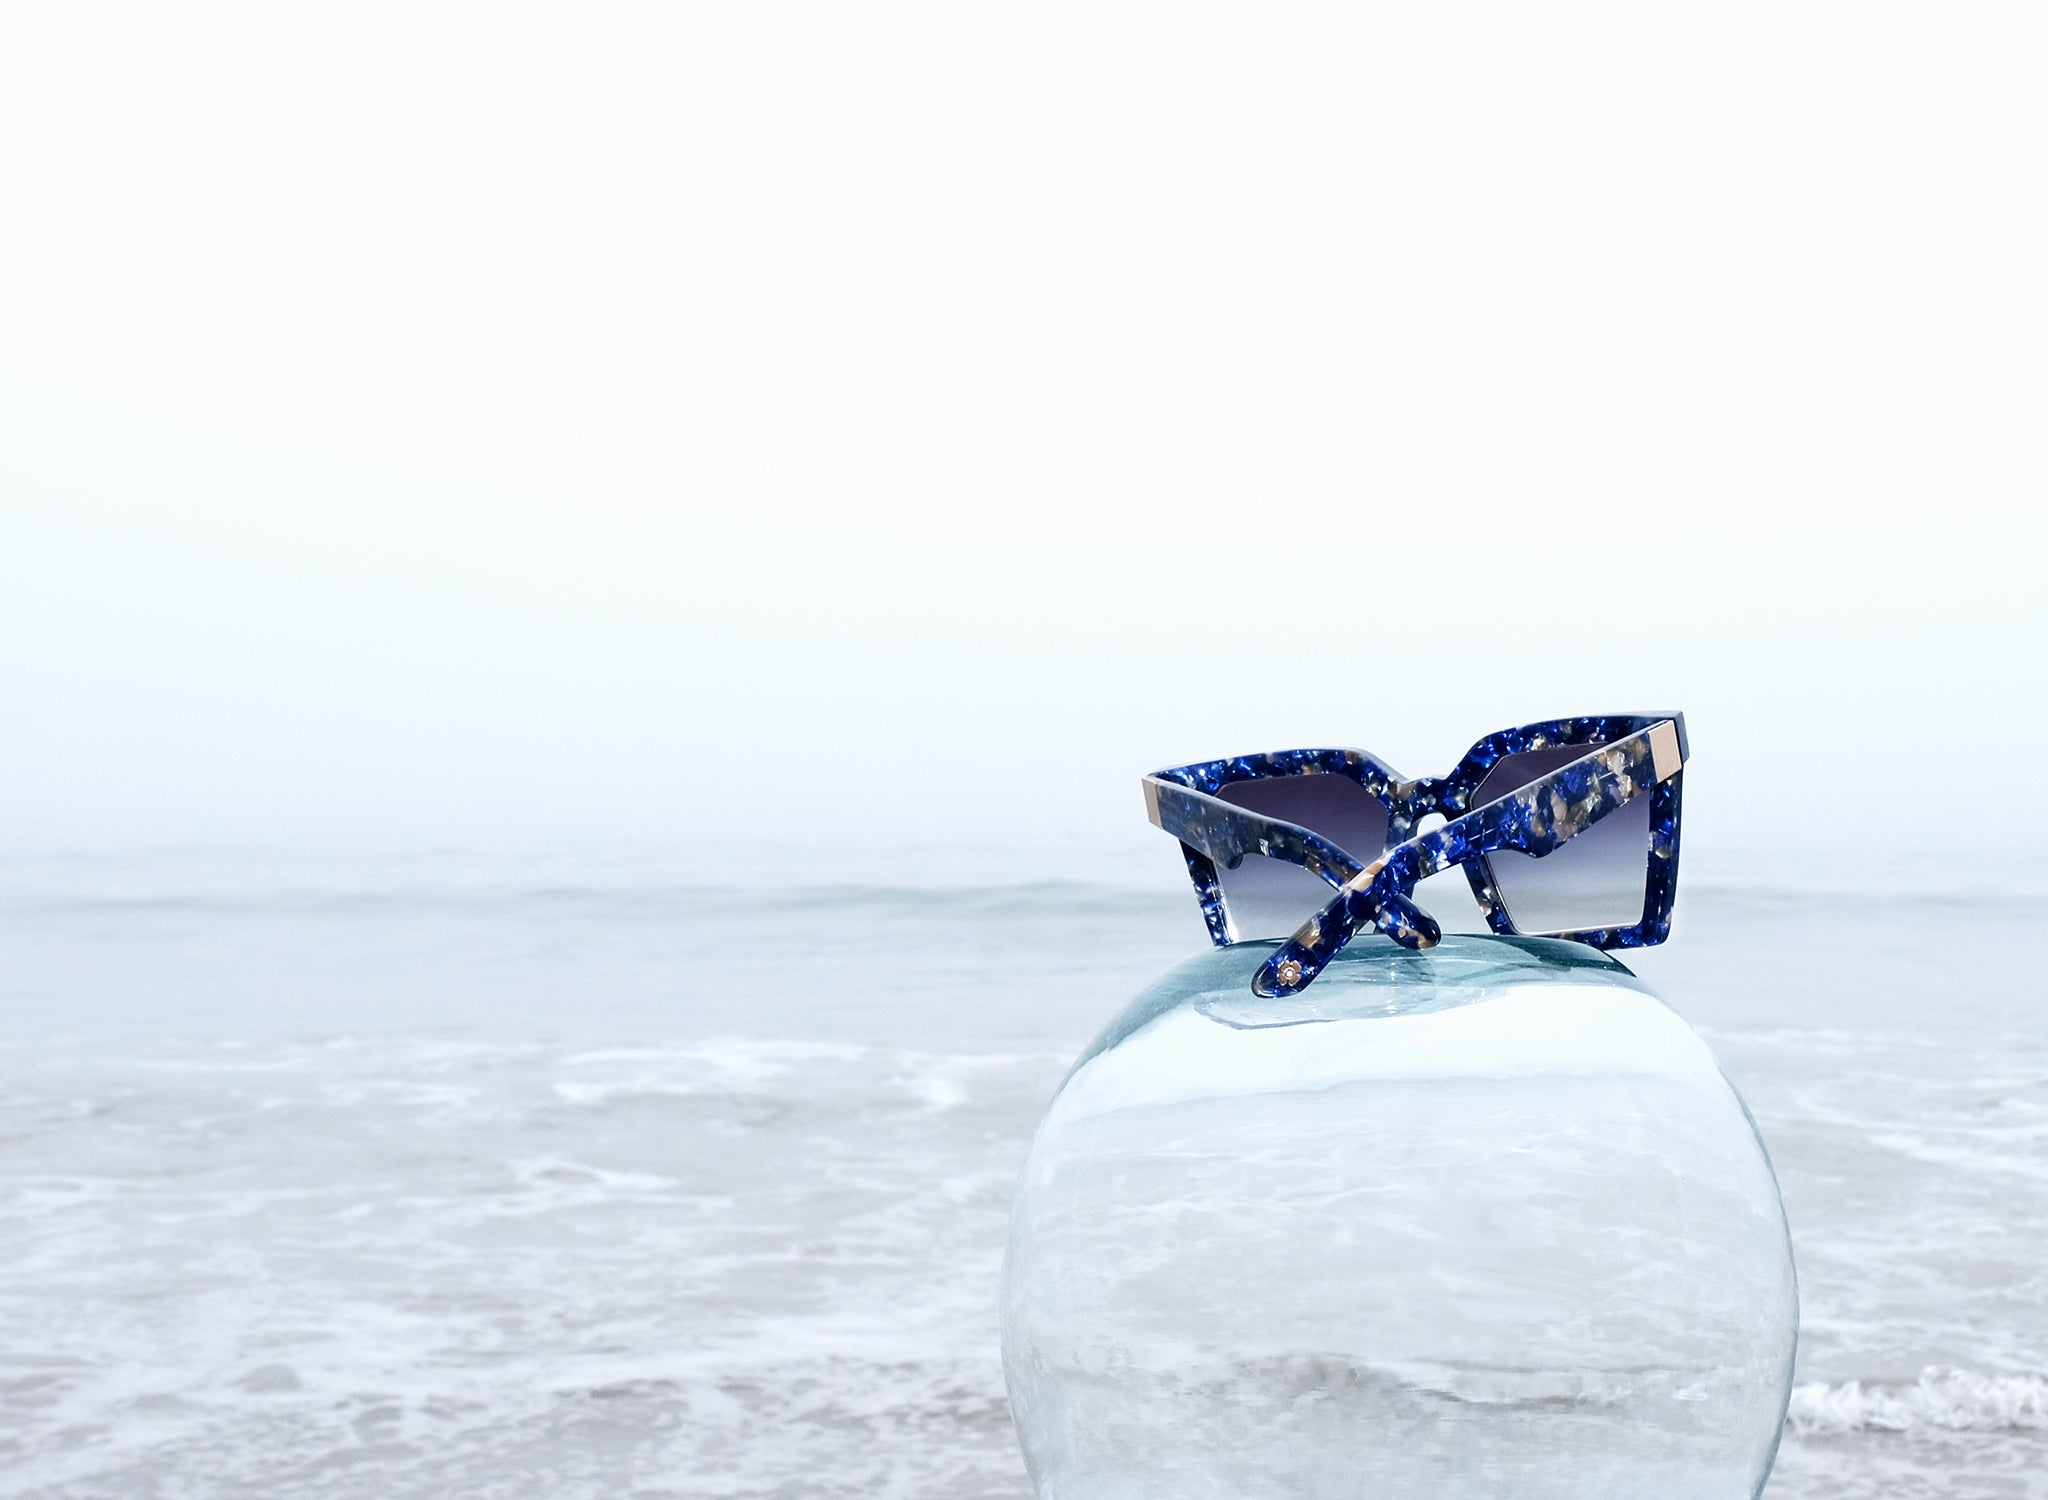 OVERSIZED BLUE SUNGLASSES, OCEAN, STILL LIFE PHOTOGRAPHY